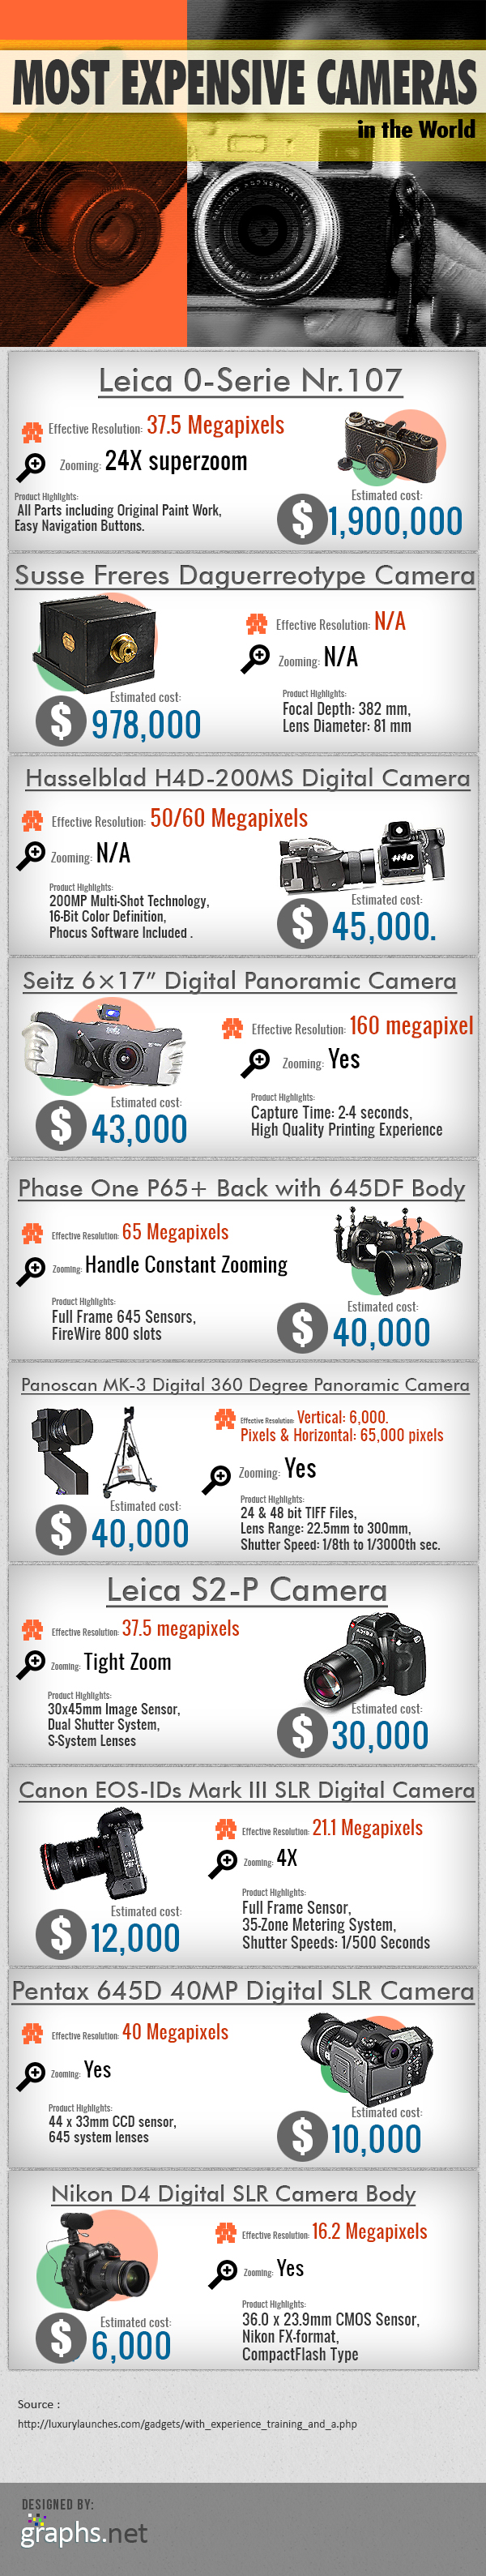 Most-Expensive-Cameras-in-the-World